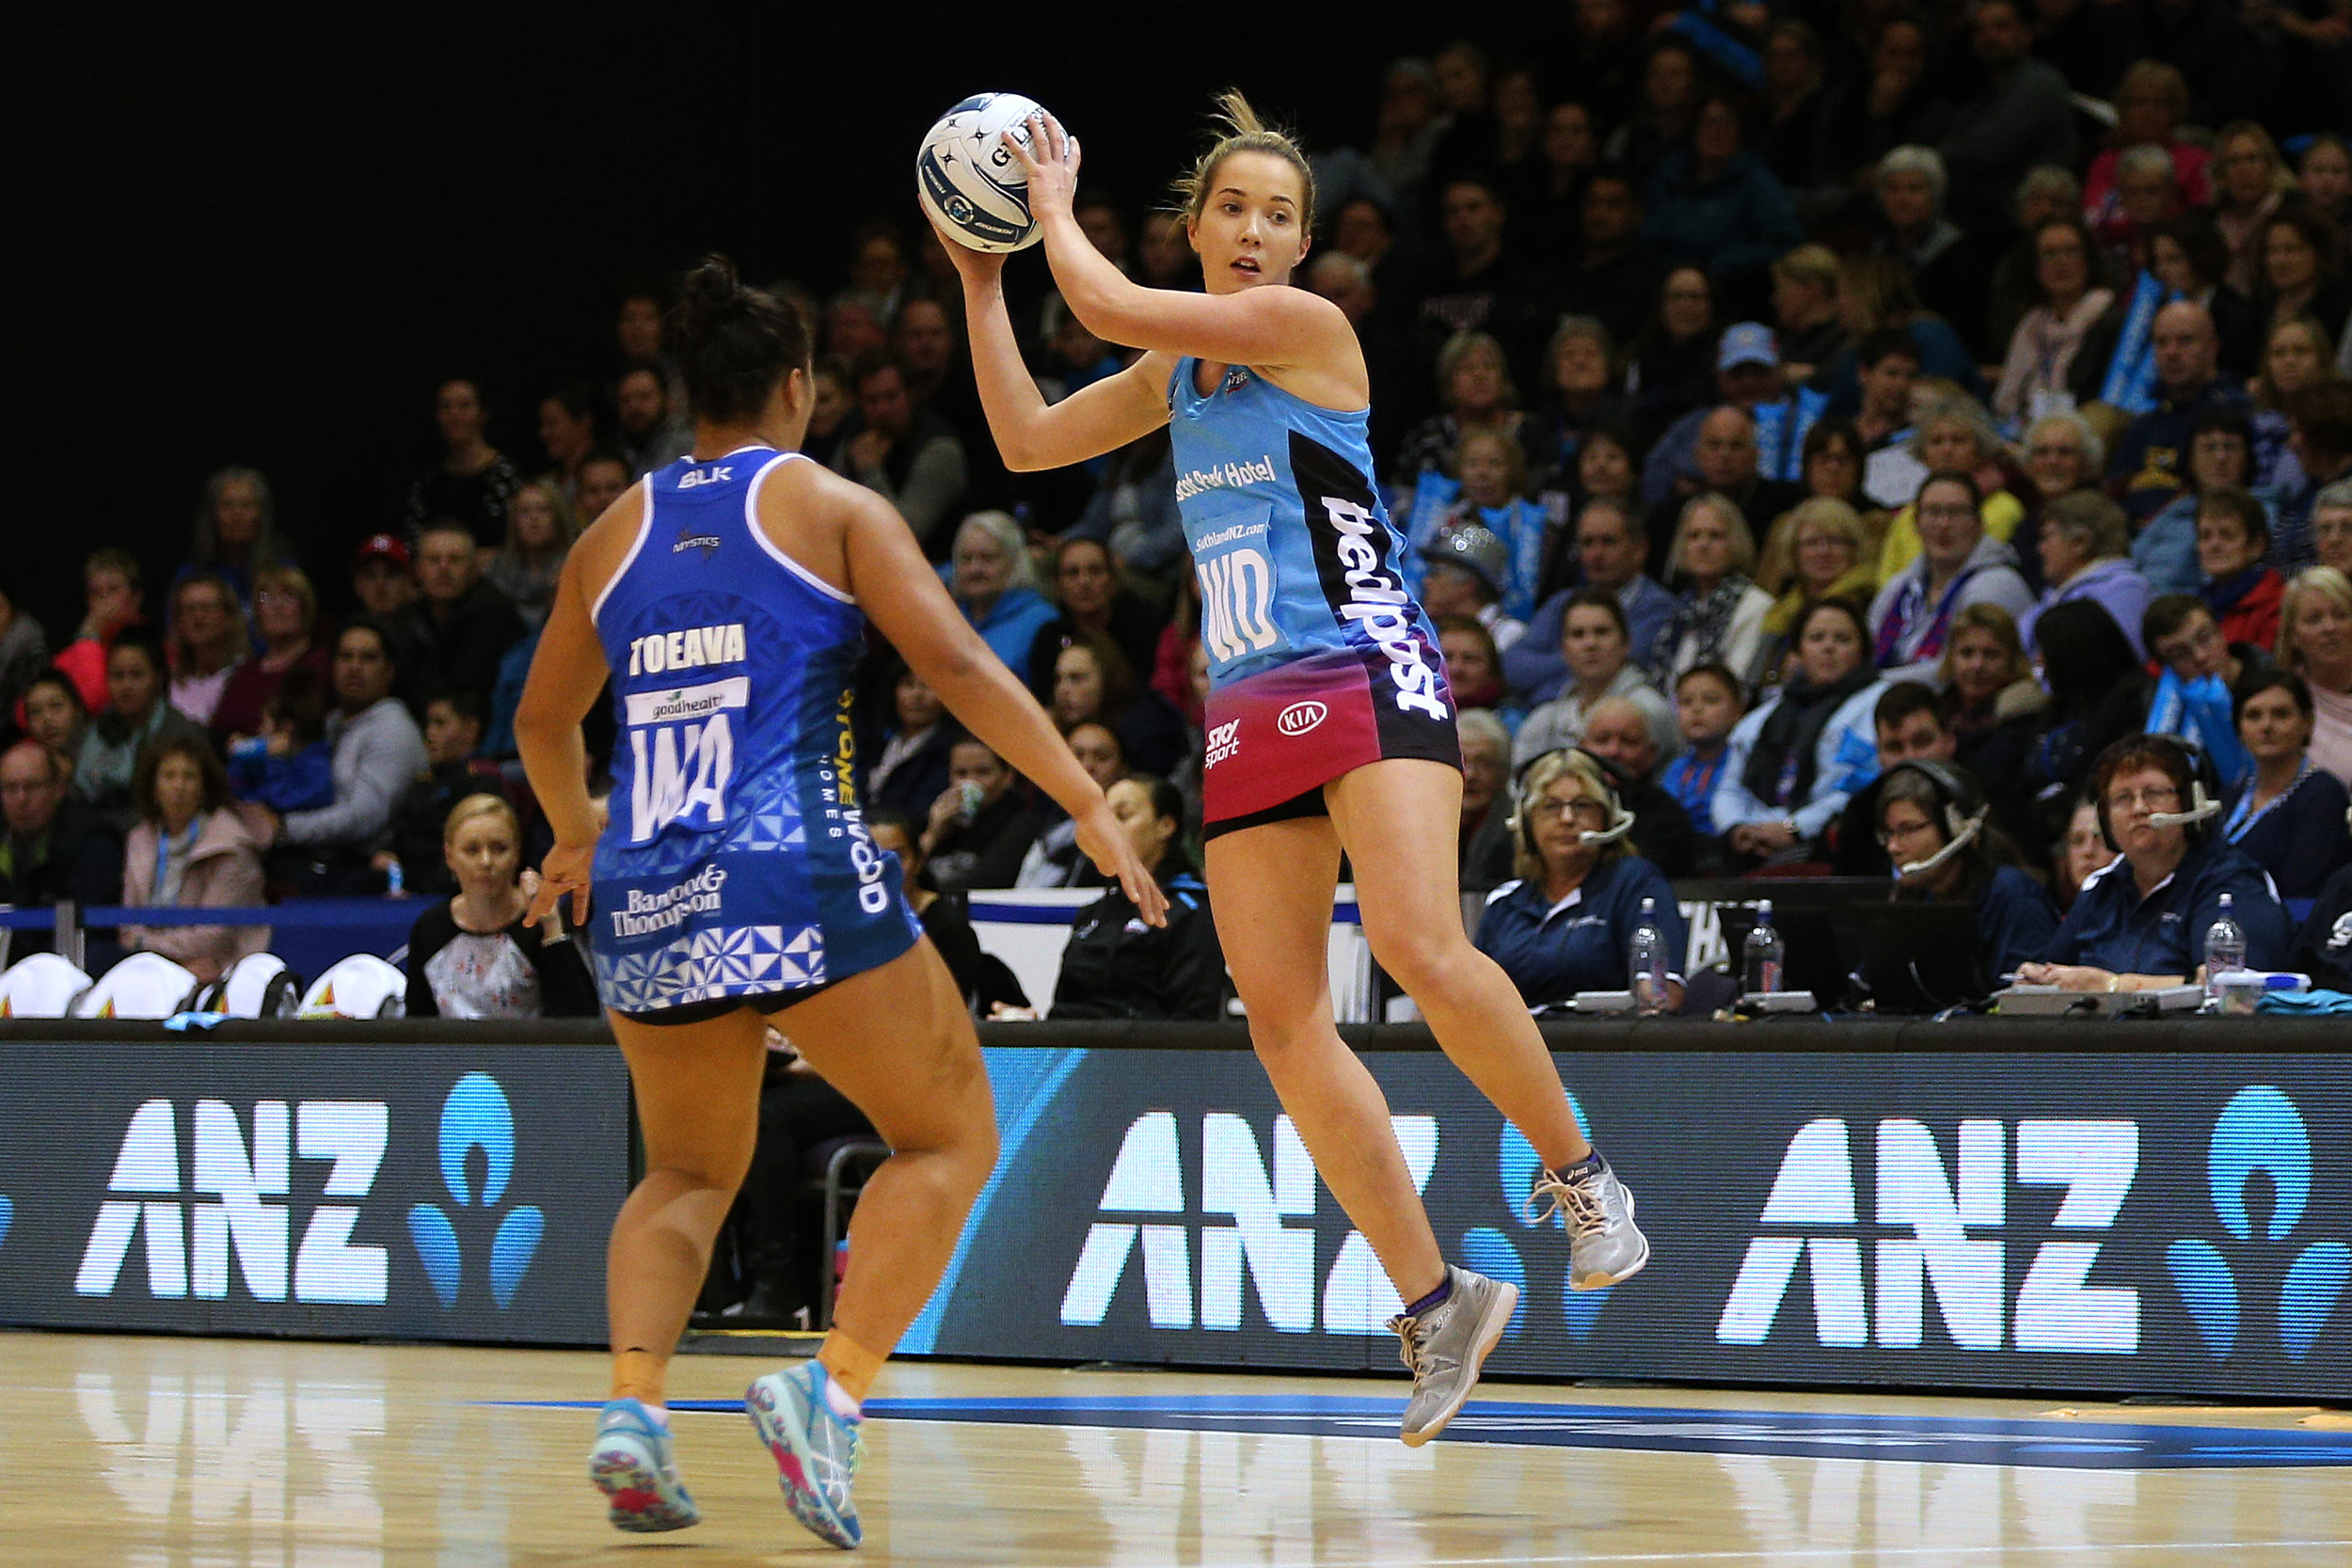 Photo: Southern Steel midcourter Kendall McMinn makes her ANZ Premiership debut against the Mystics tonight. Pic: Dianne Manson/Michael Bradley Photography